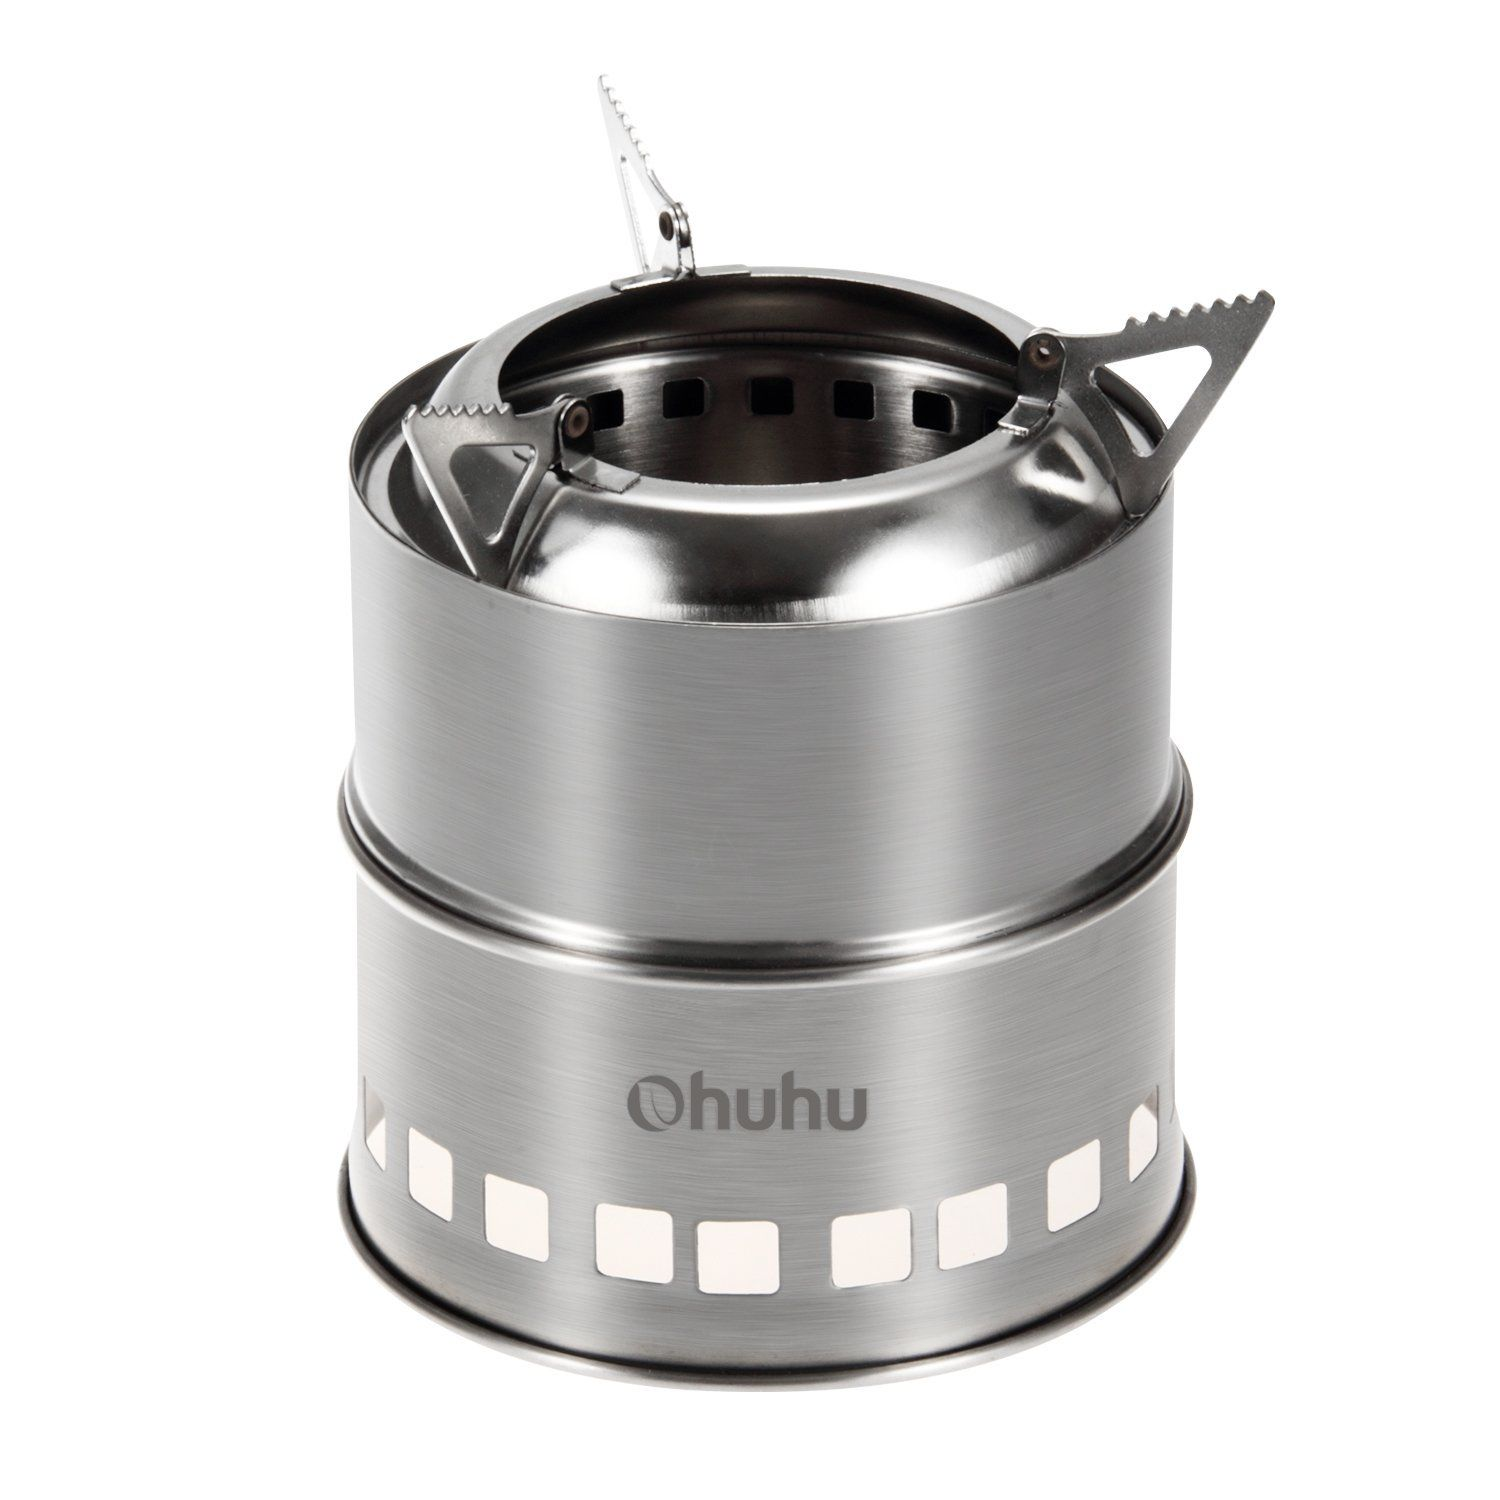 Ohuhu Wood Burning Camping Stove